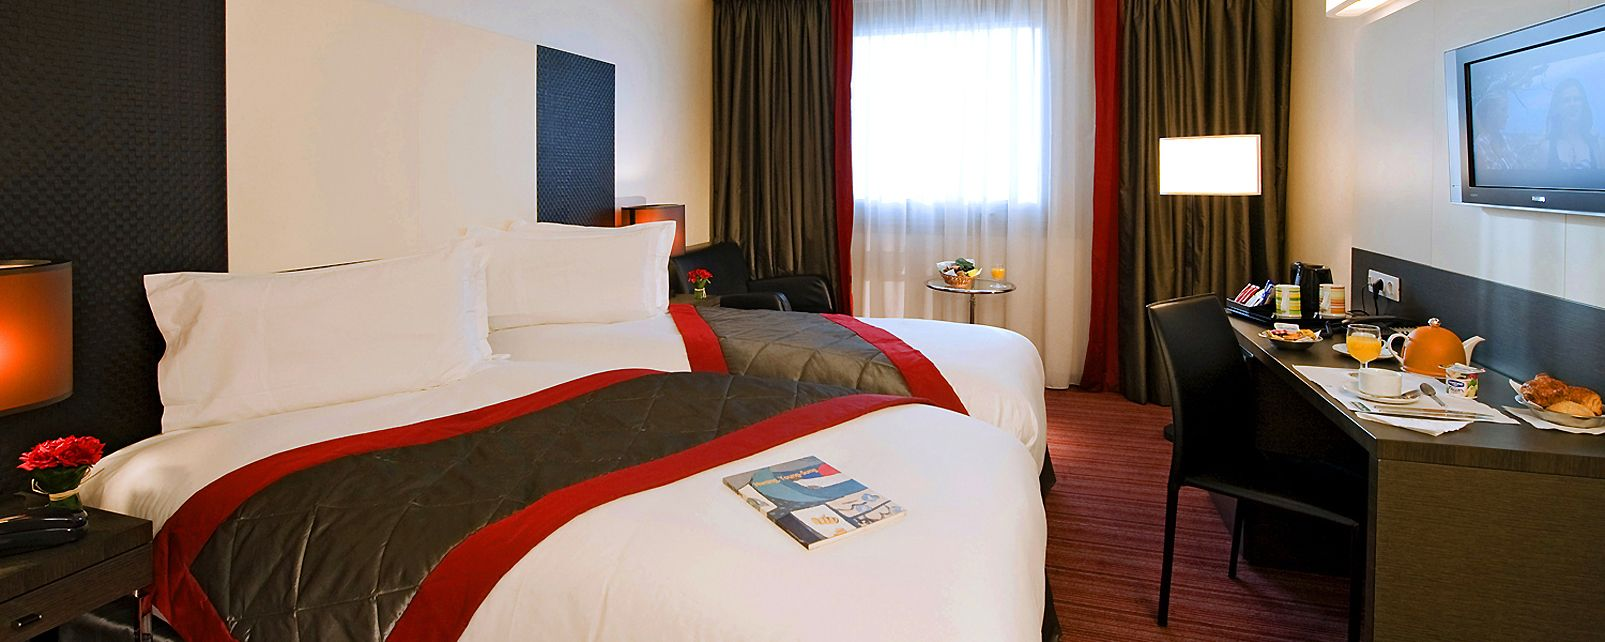 Hotel Holiday Inn Paris Montparnasse